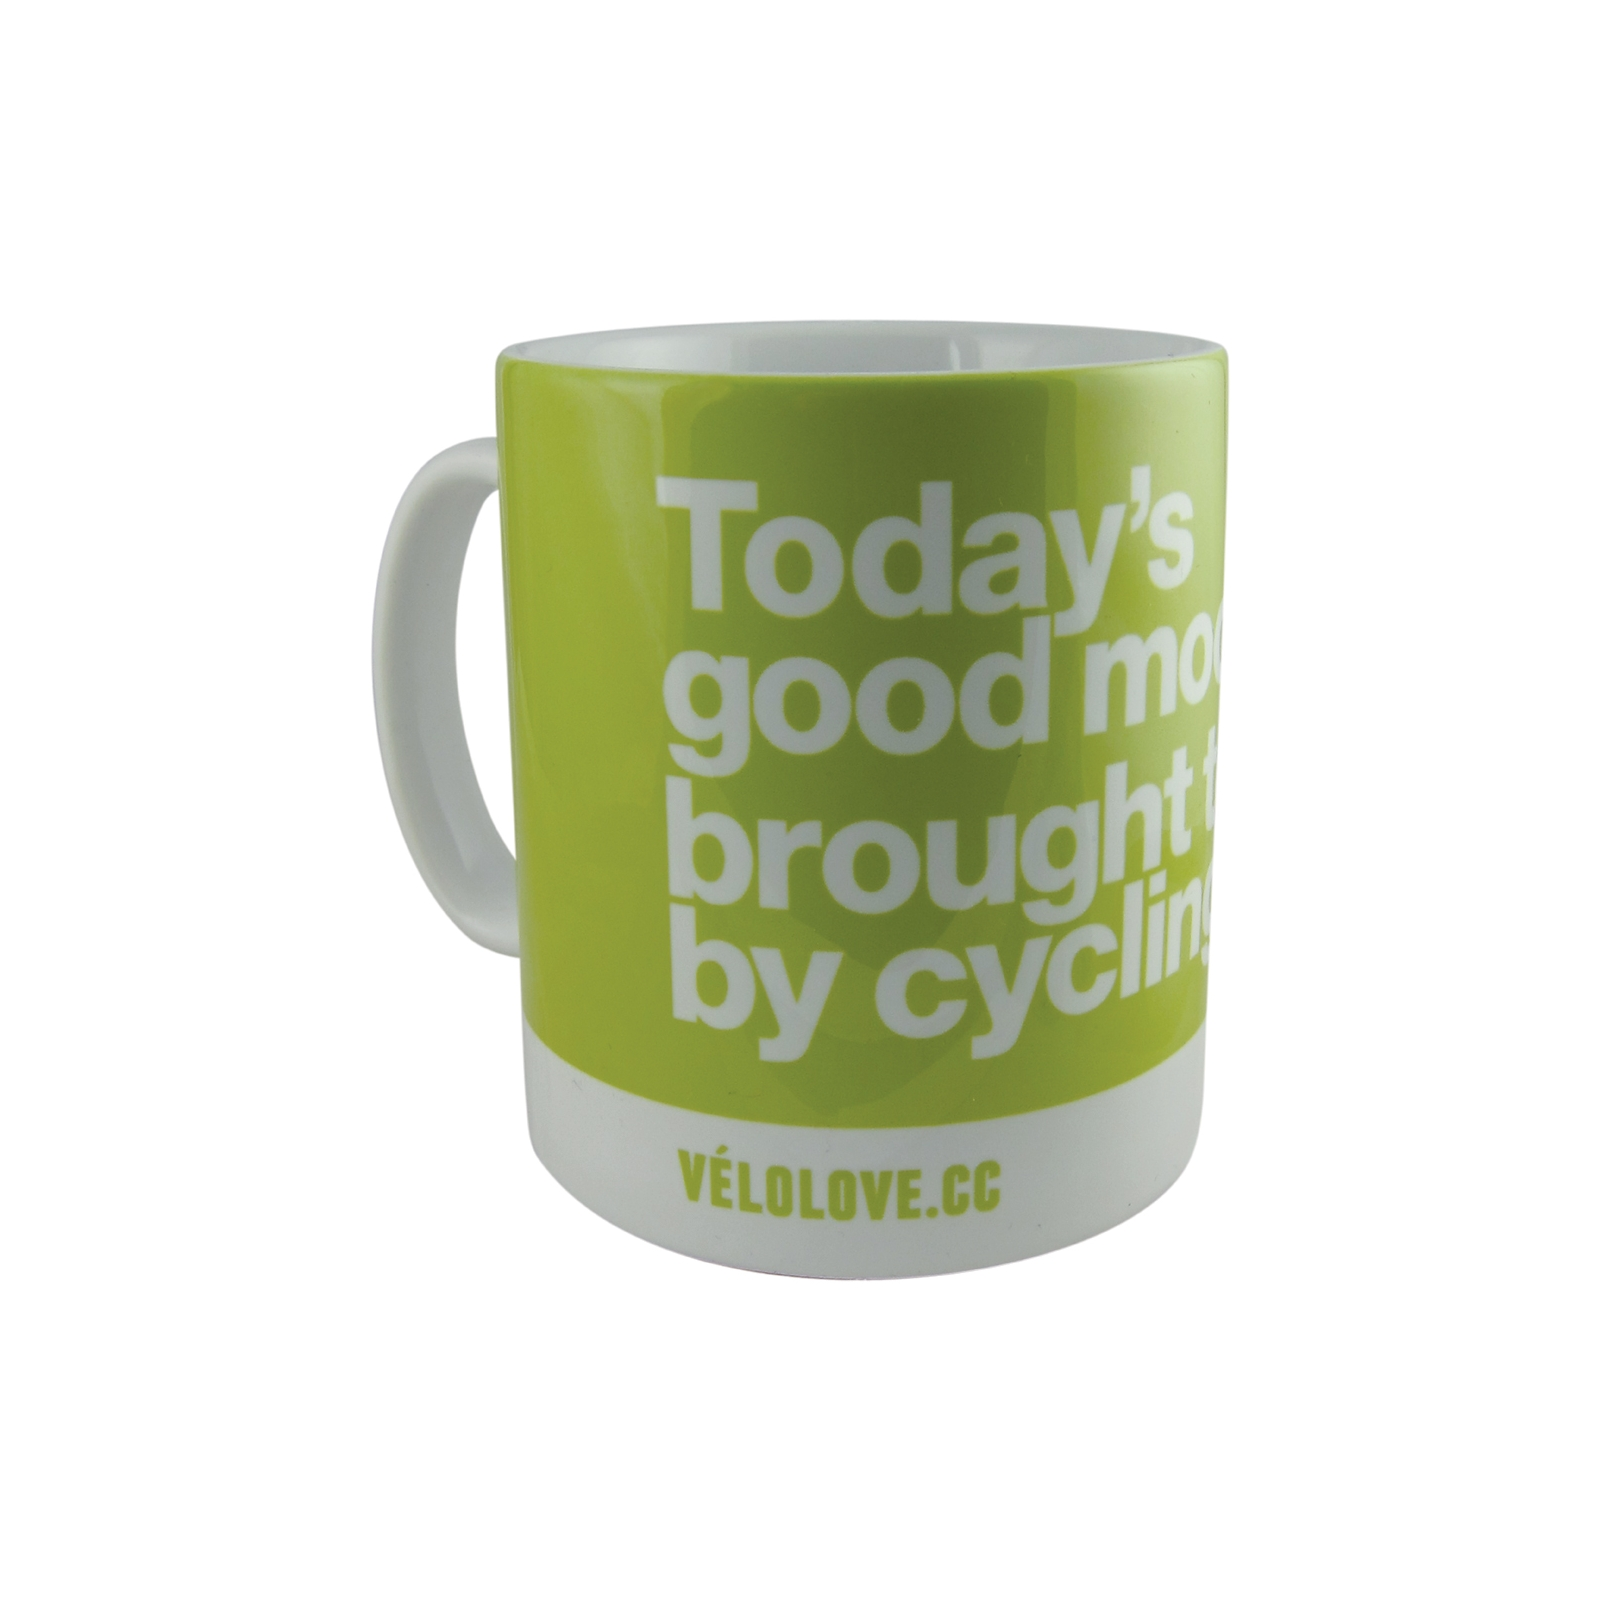 Velolove Today's good mood is brought to you by cycling Mug |